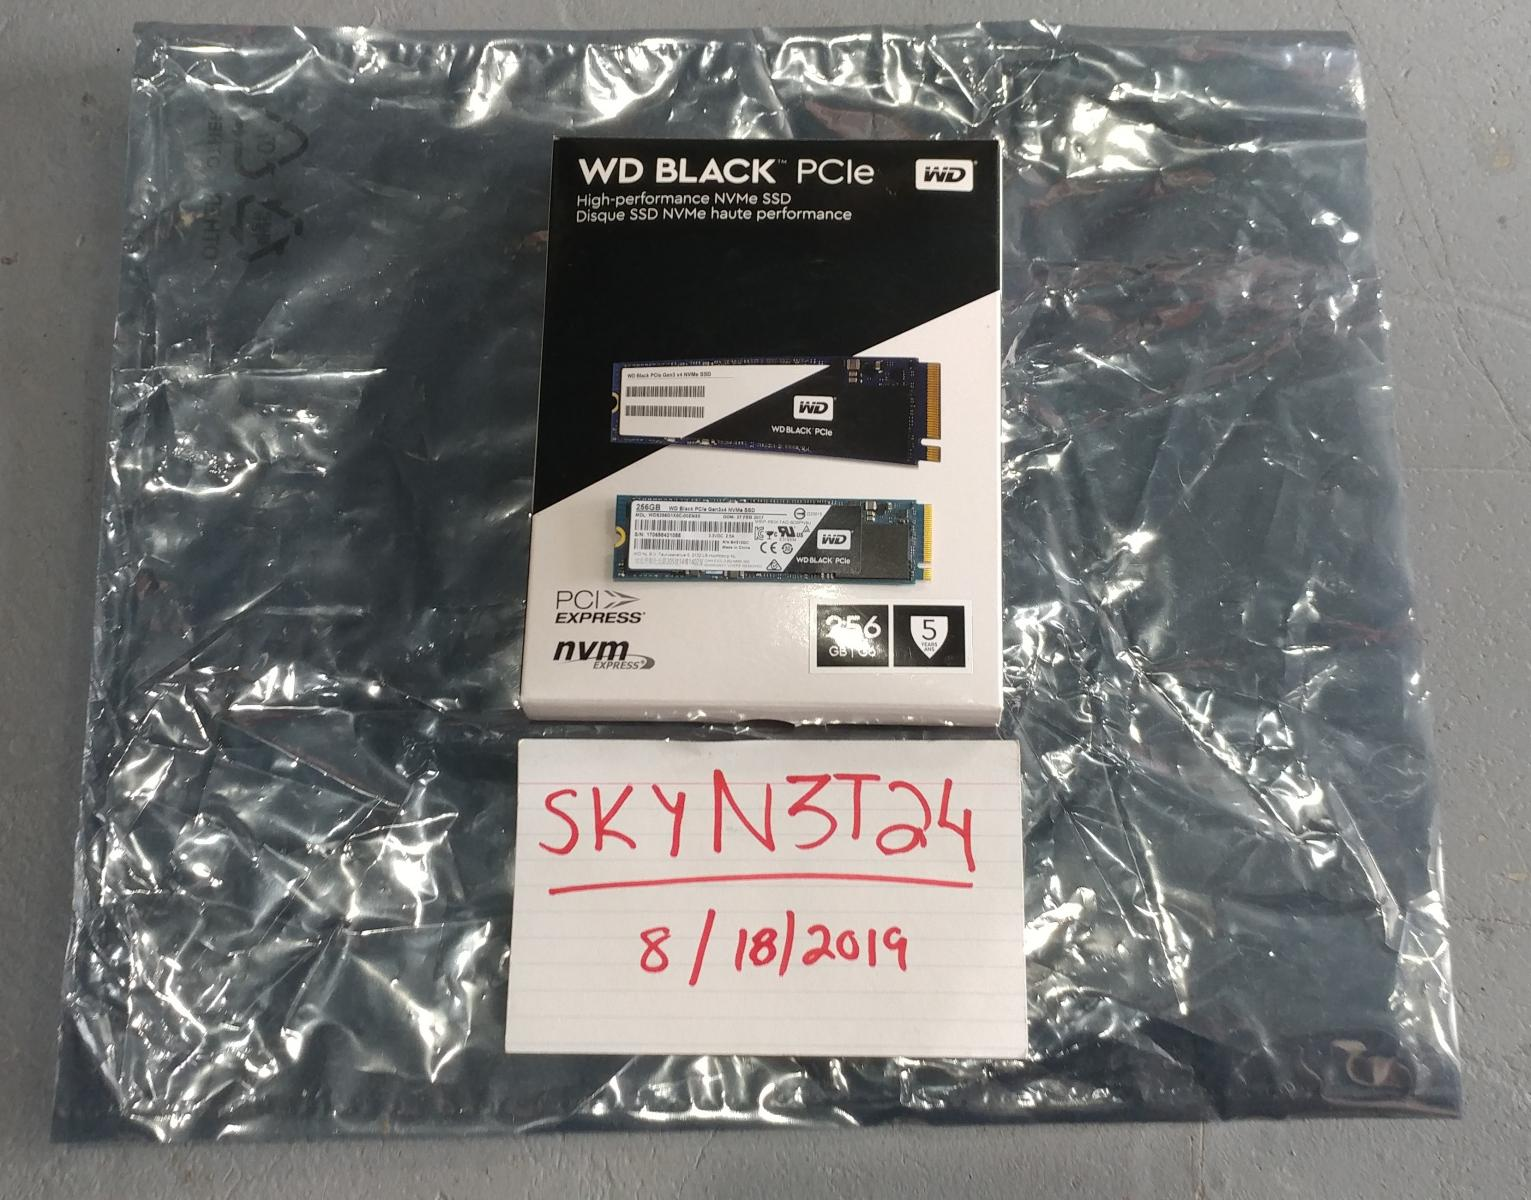 Photo of WD Black 256GB M.2 NVMe PCI-e SSD with Windows 10. In Box